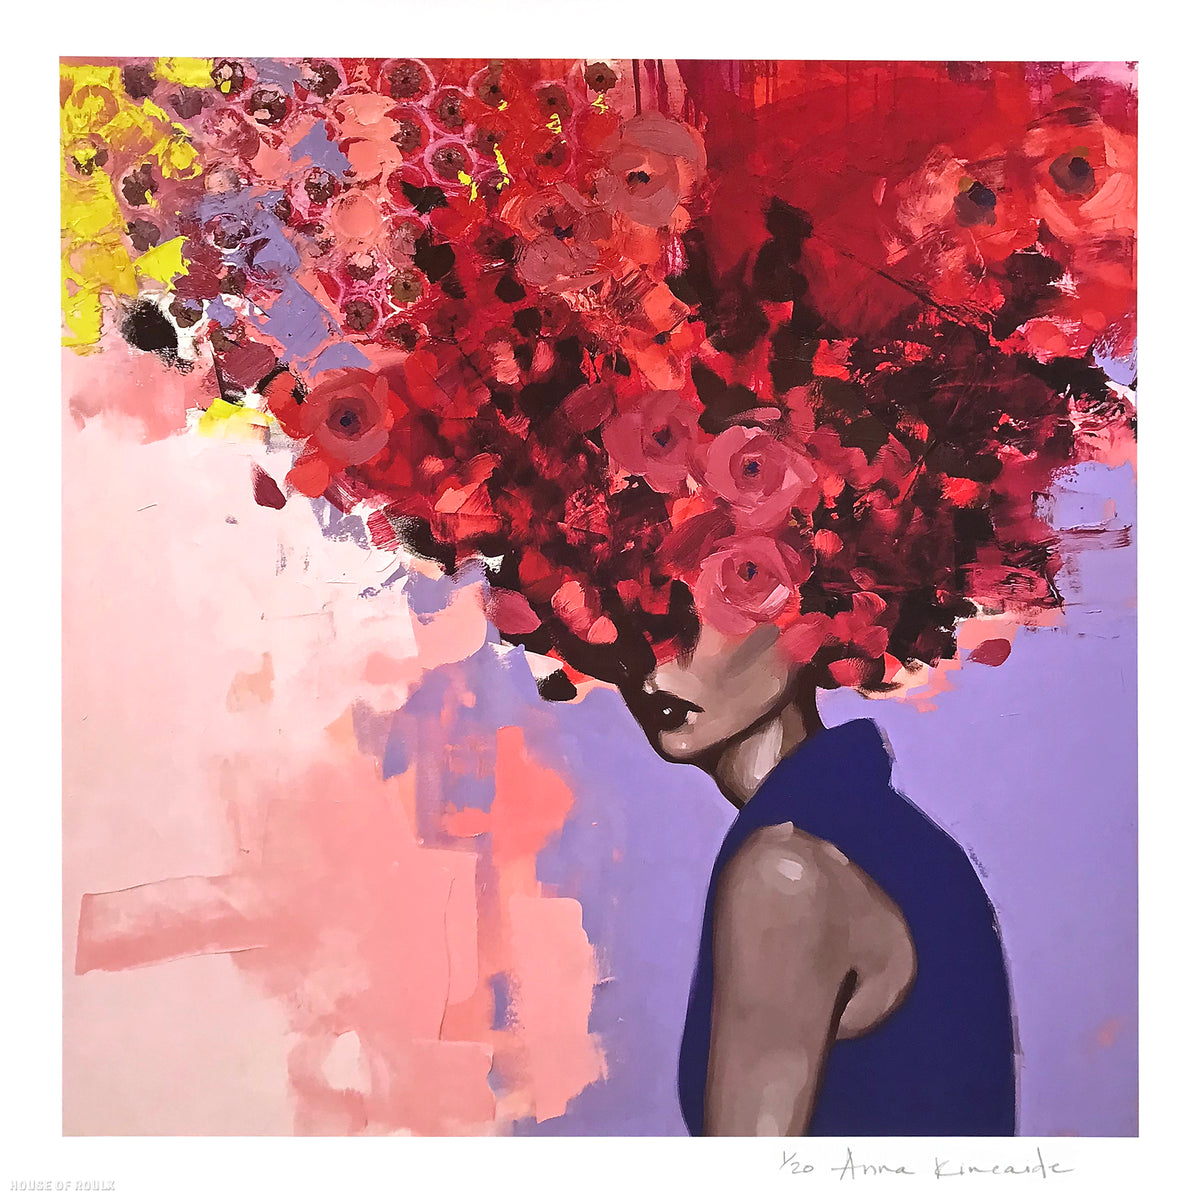 "Anna Kincaide ""The Color of Love"" - Archival Print, Limited Edition of 20 - 18 x 18"""